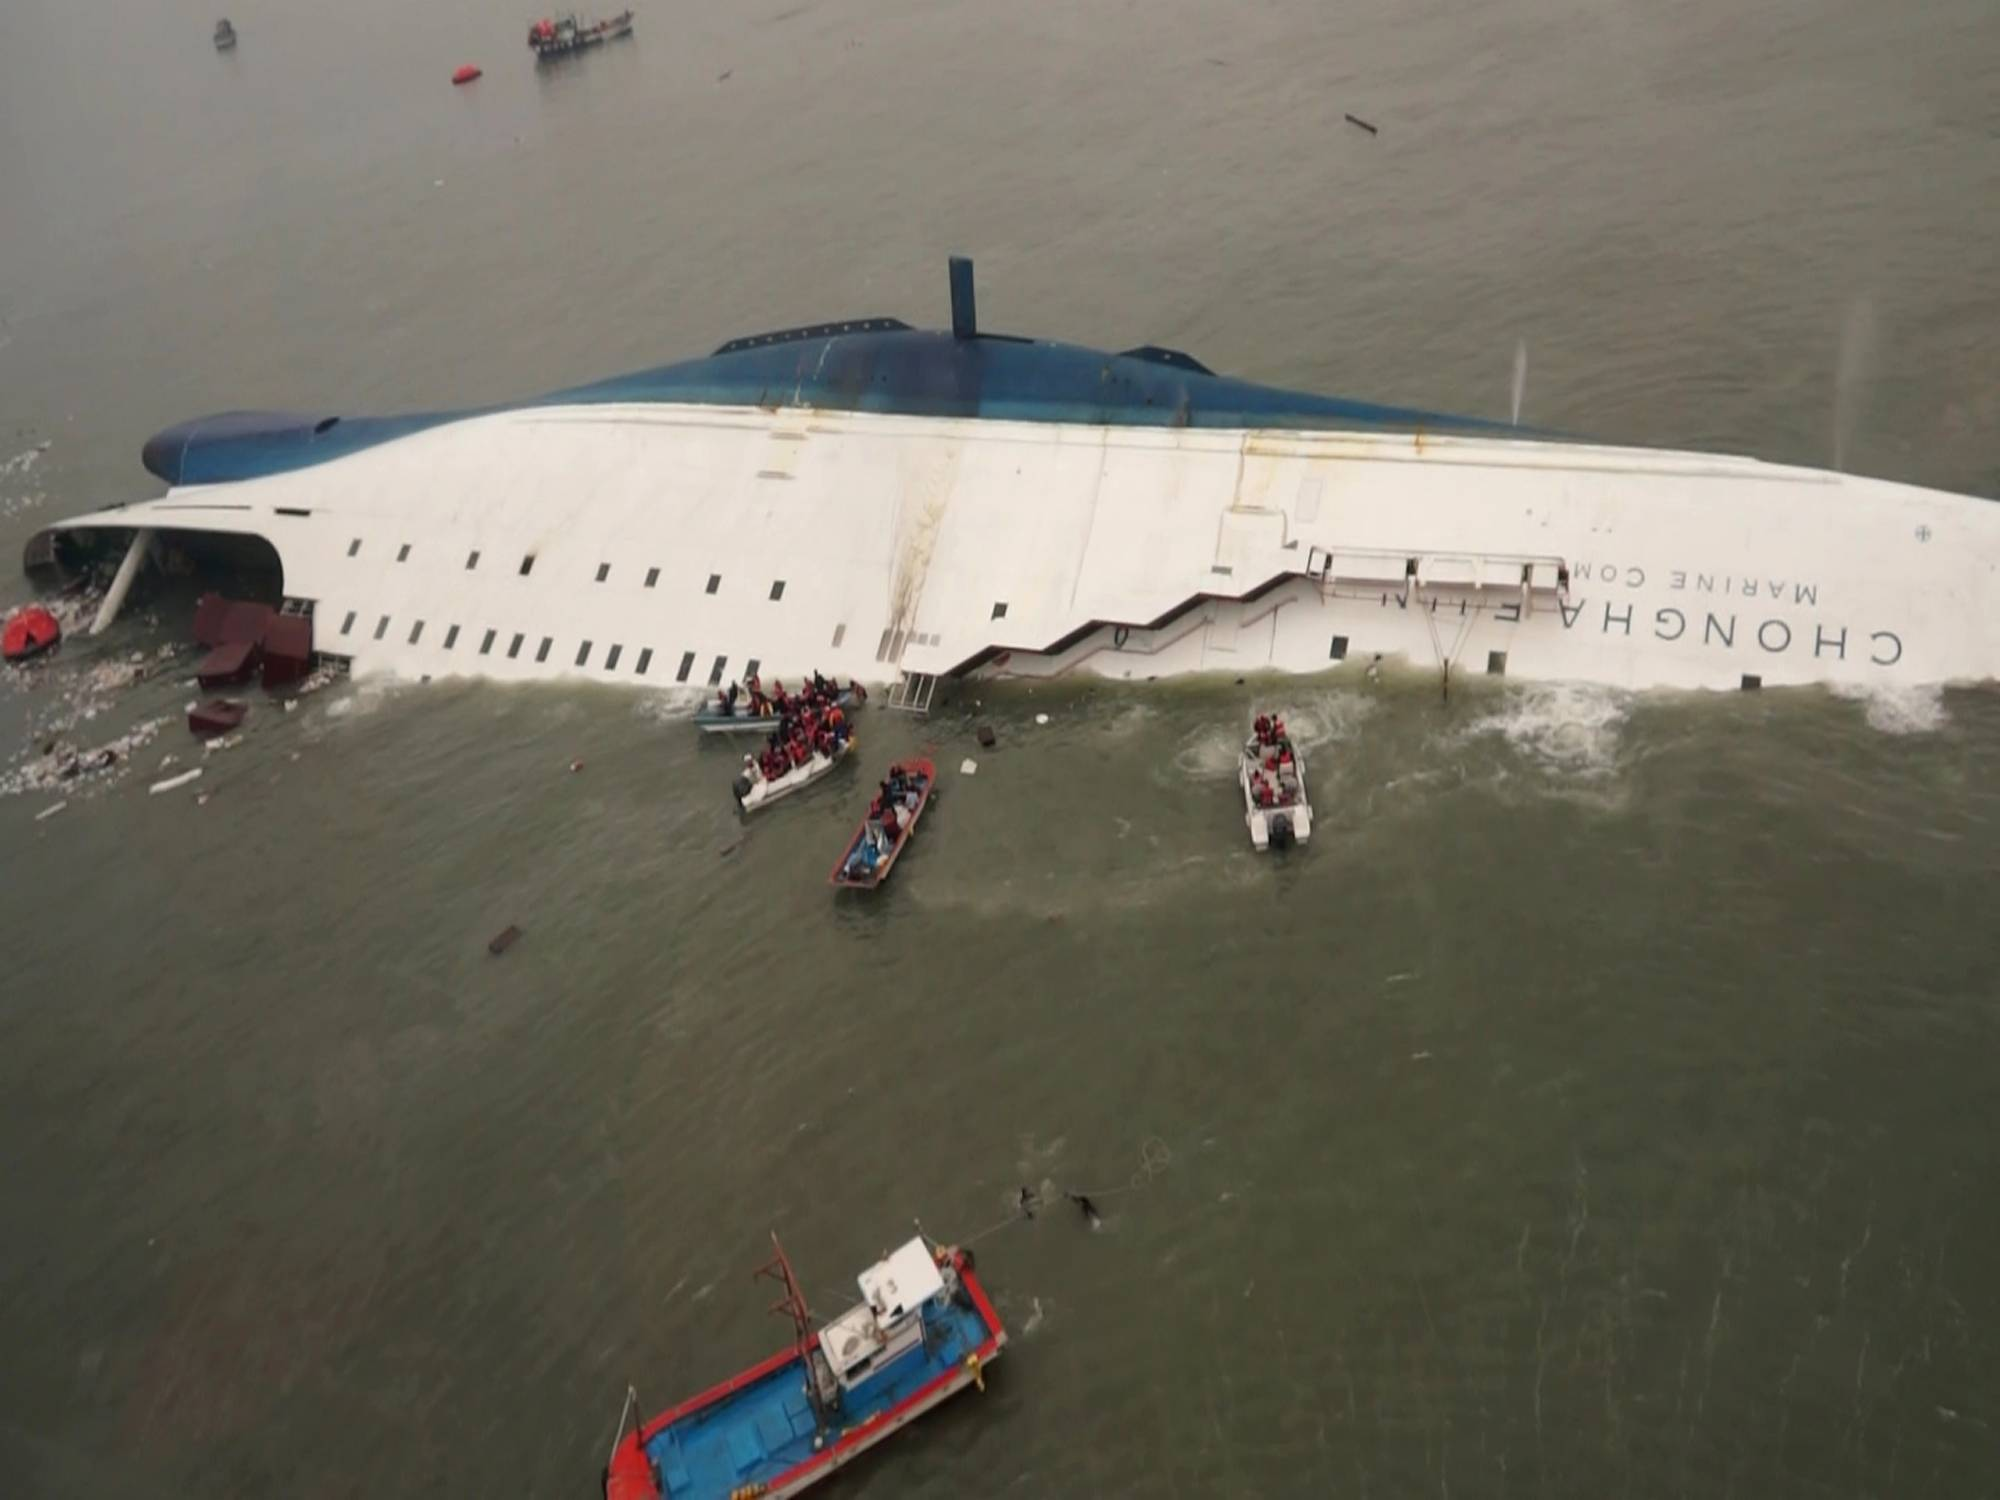 In this photo released by South Korea Coast Guard via Yonhap News Agency, South Korean rescue team boats and fishing boats try to rescue passengers of a ferry sinking off South Korea's southern coast, in the water off the southern coast near Jindo, south of Seoul, Wednesday, April 16, 2014. Nearly 300 people were still missing Wednesday several hours after a ferry carrying 459, most of them high school students, sank in cold waters off South Korea's southern coast.